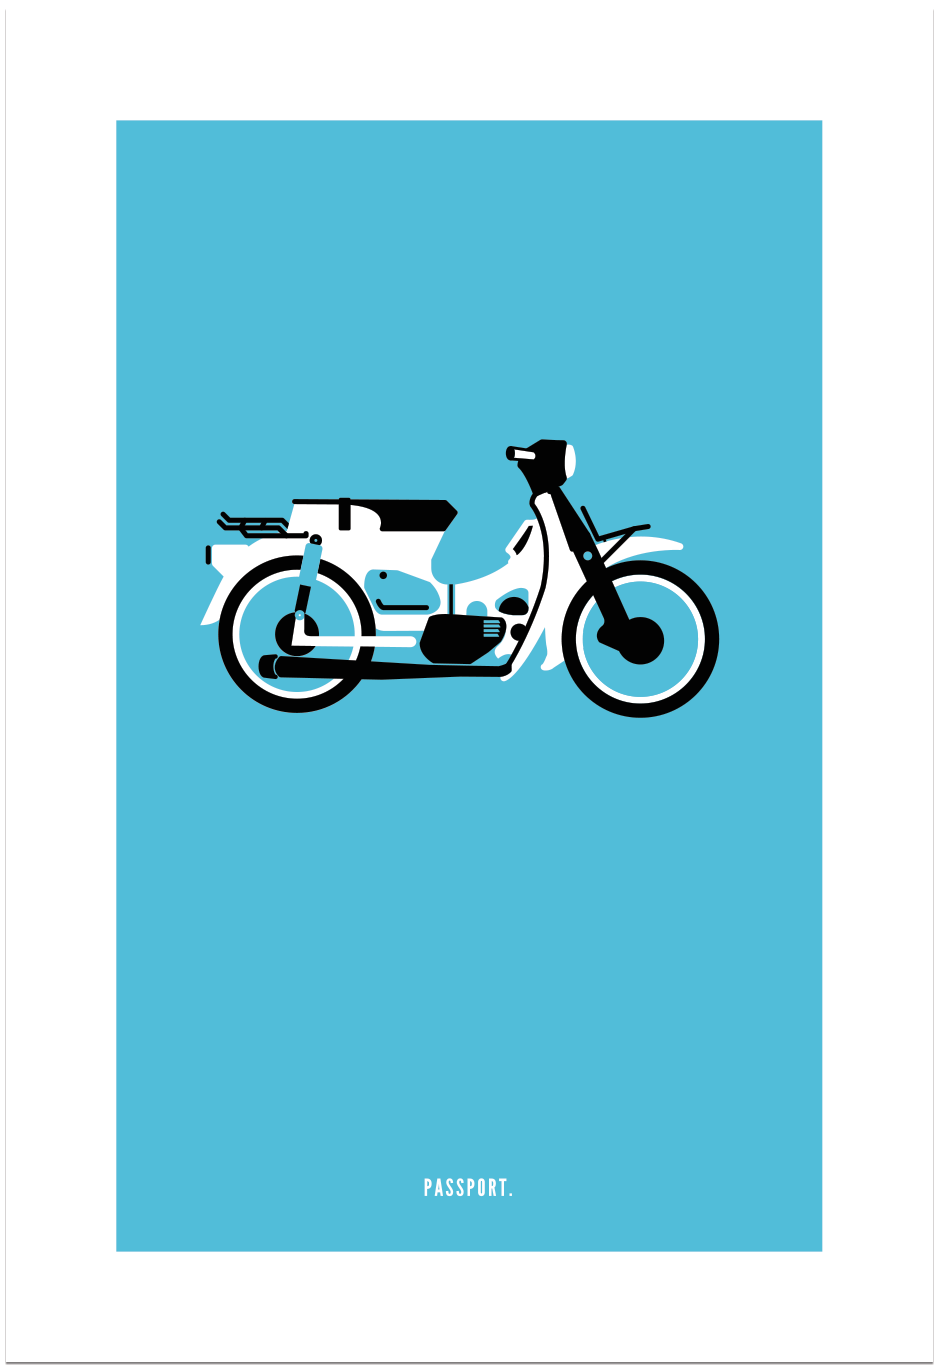 moped-print-1 copy.png